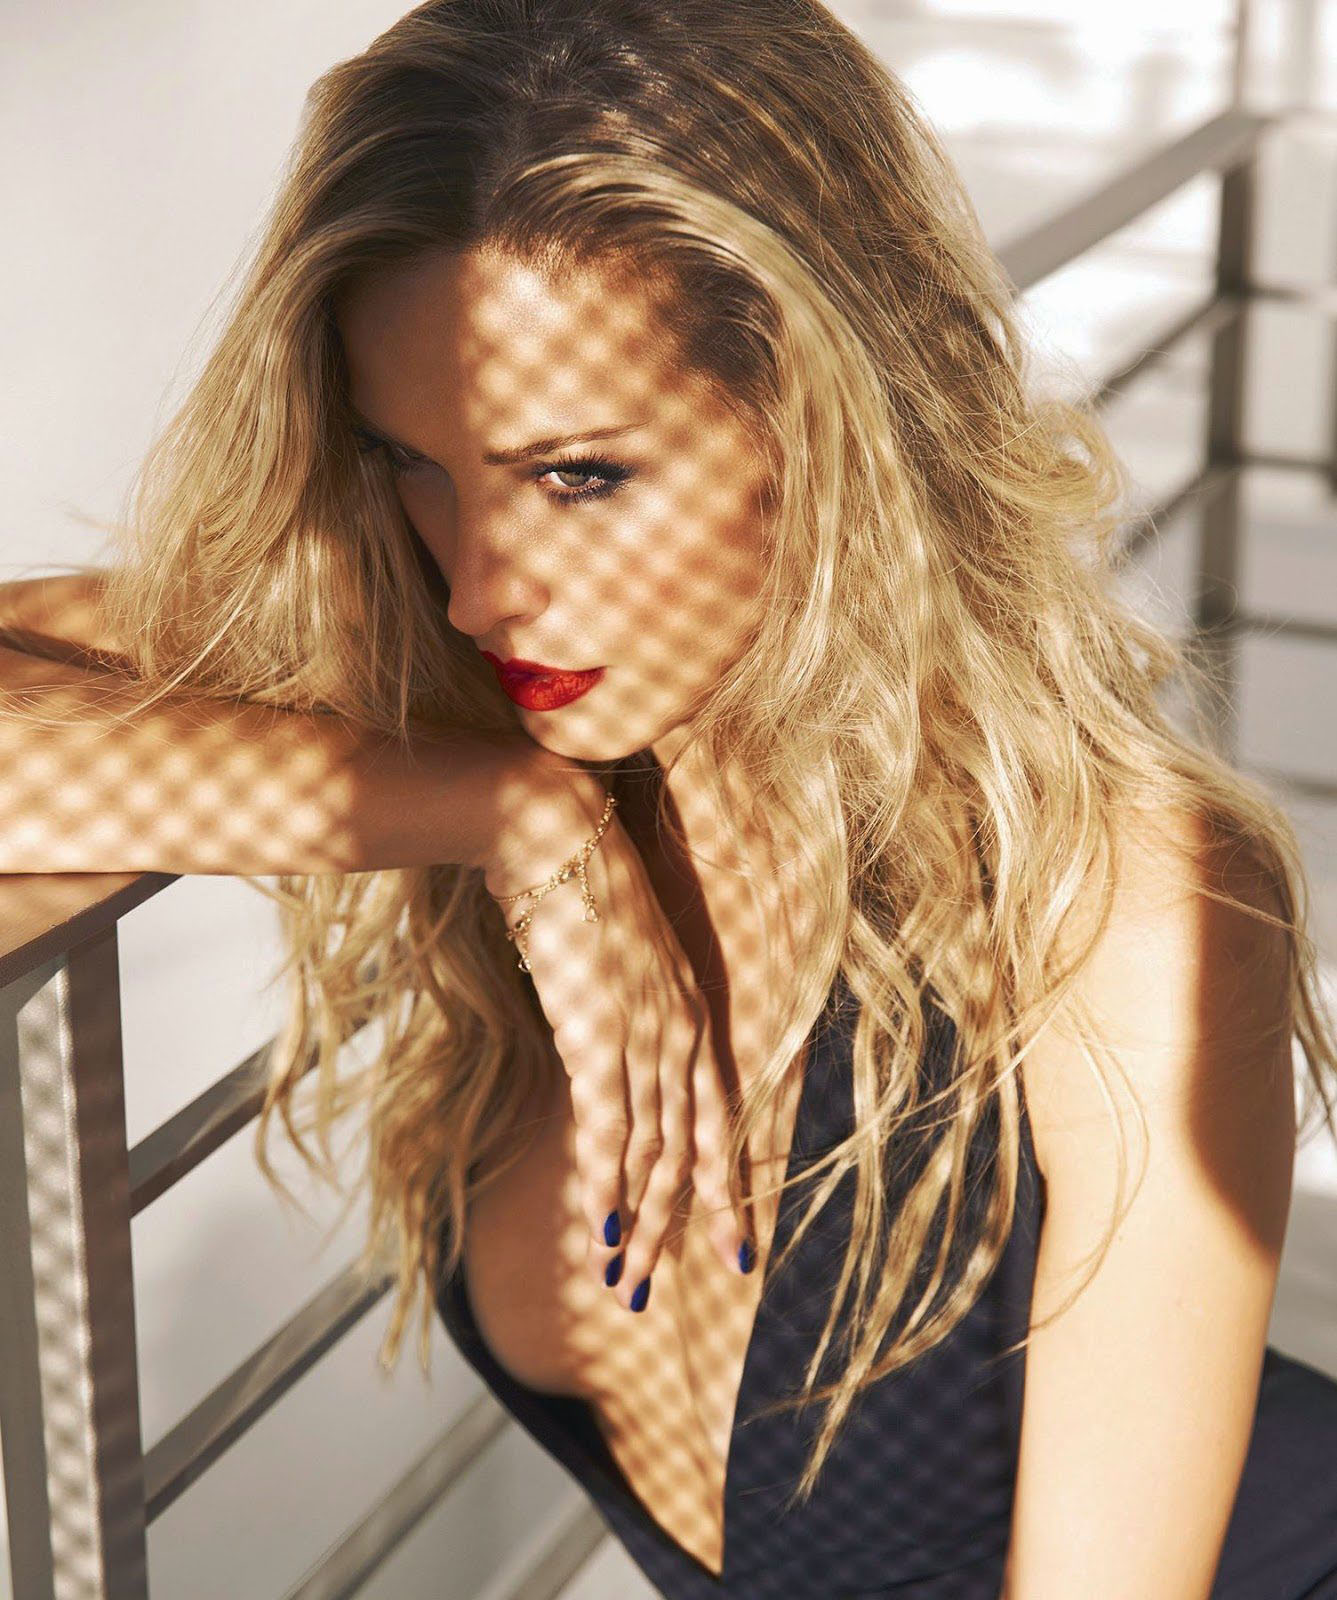 Charming Petra Nemcova in the morning wallpaper